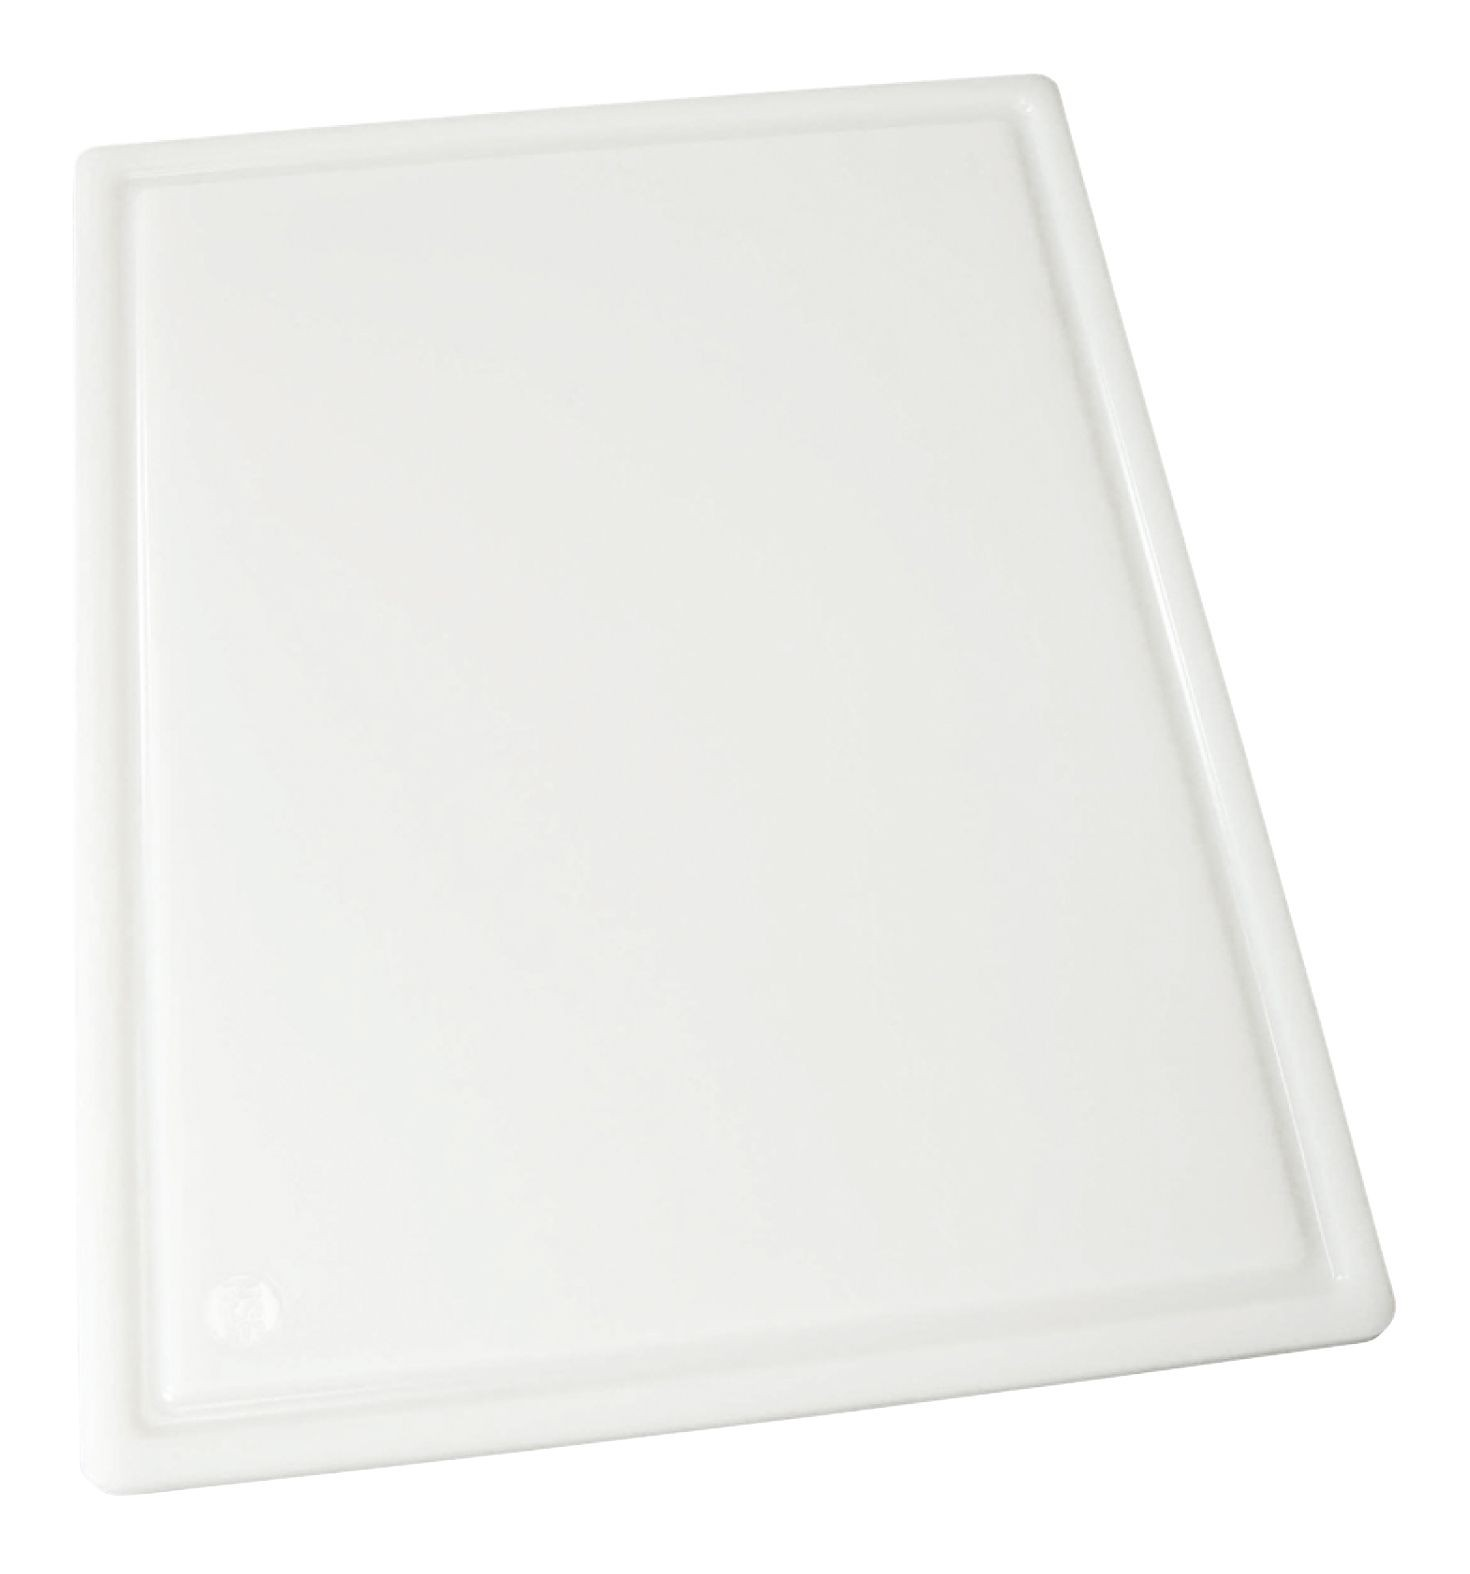 "Winco CBI-1520 Grooved White Cutting Board 15"" x 20"""